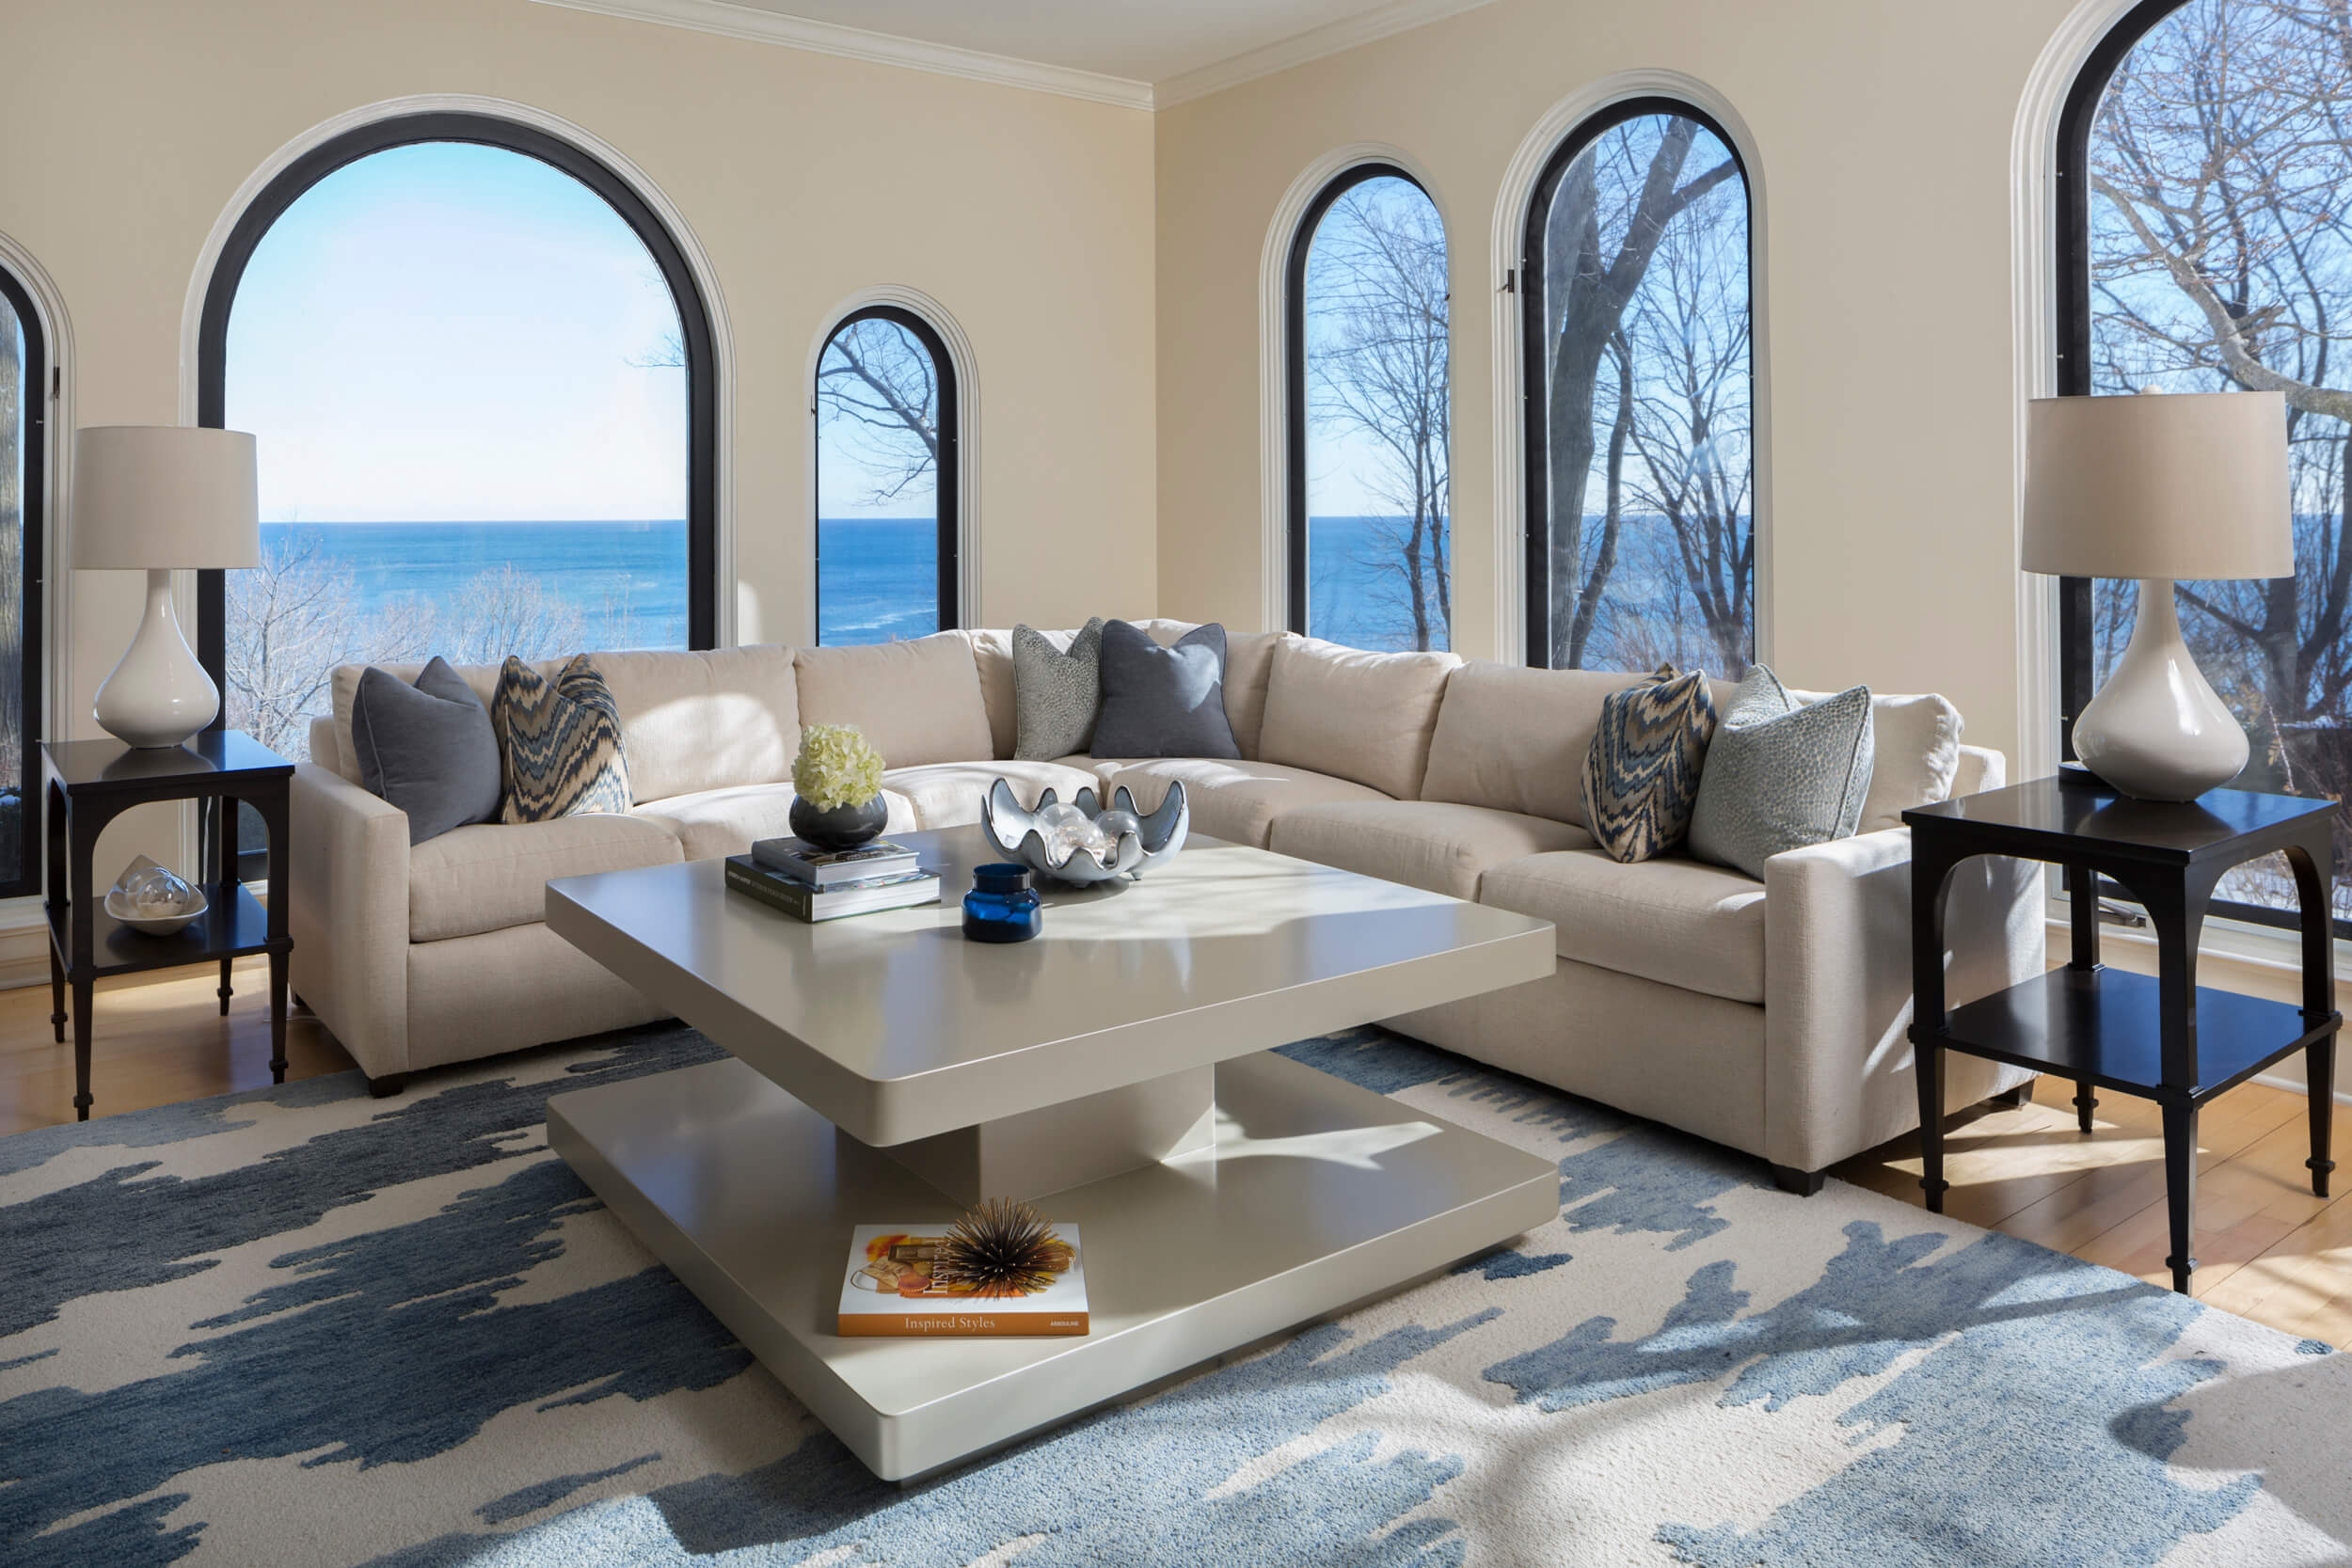 Modern mediterranean karen kempf interior design serving milwaukee waukesha wi for Modern mediterranean interior design